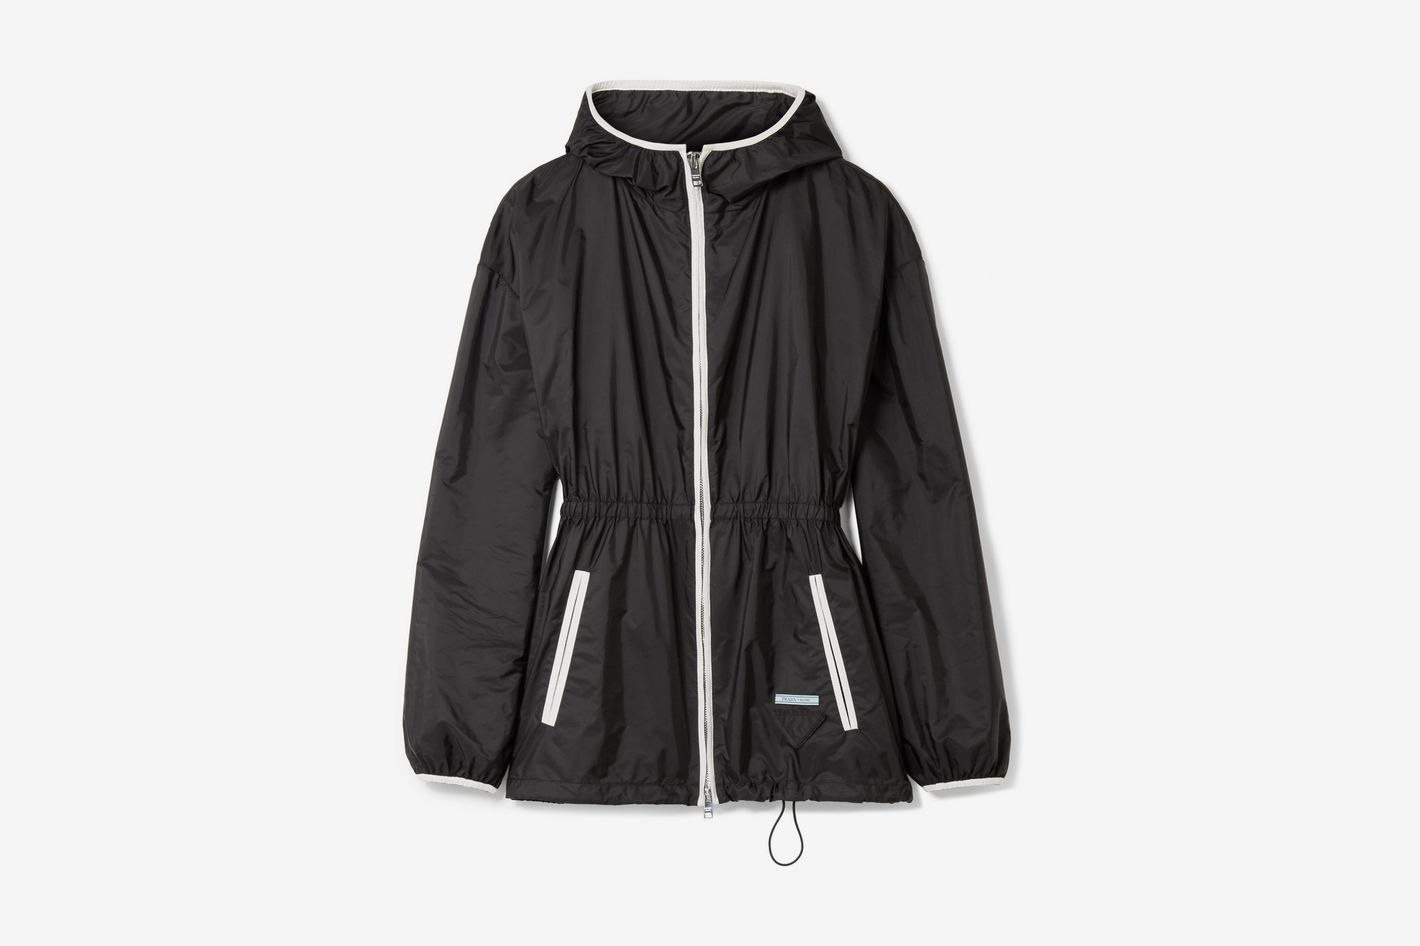 Prada Hooded Gathered Shell Jacket